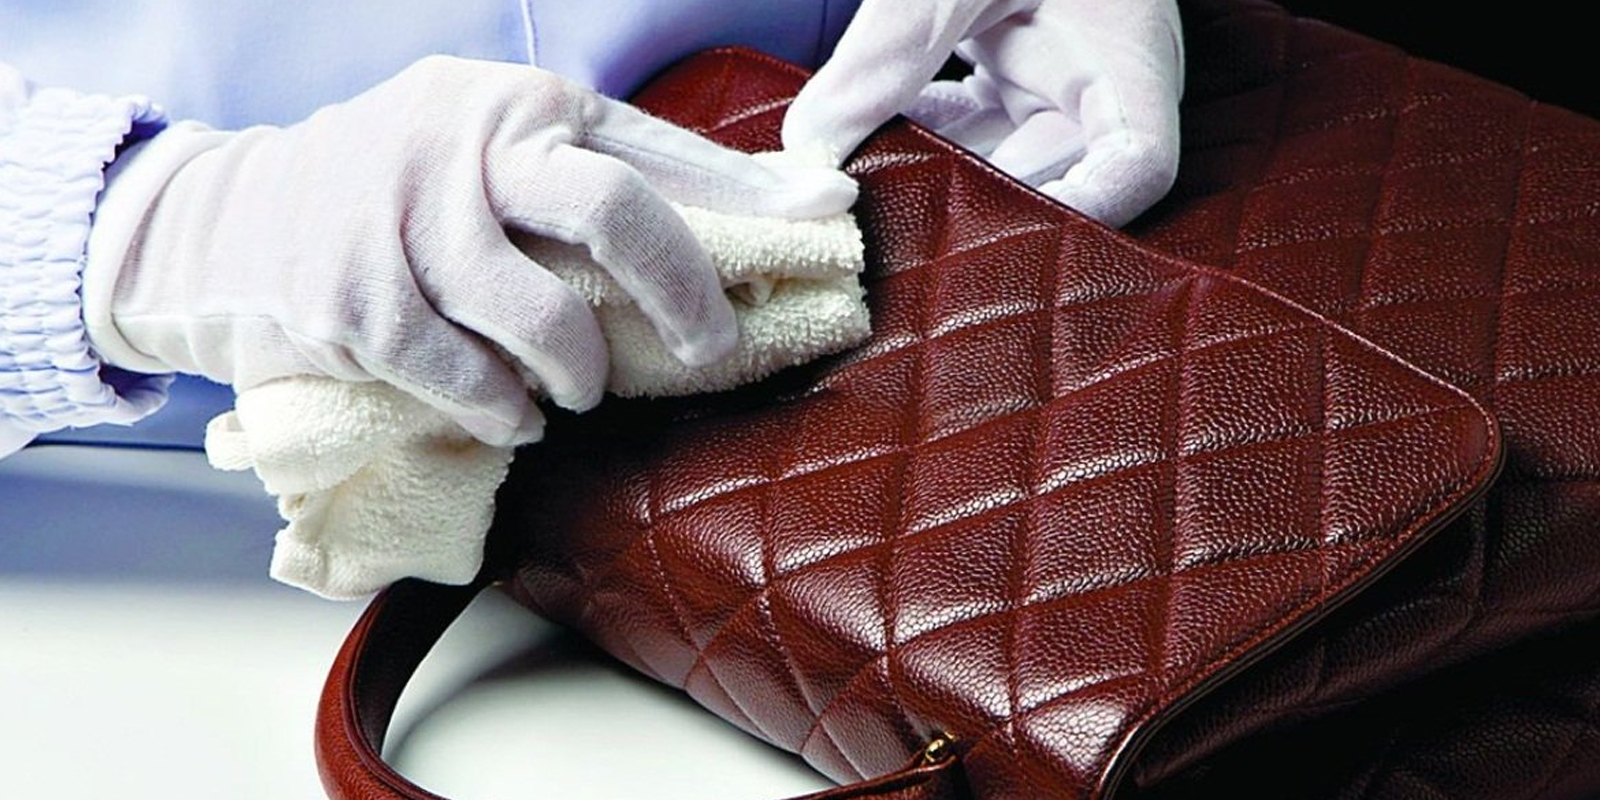 HOW TO KEEP YOUR HANDBAG CLEAN AND BACTERIA FREE